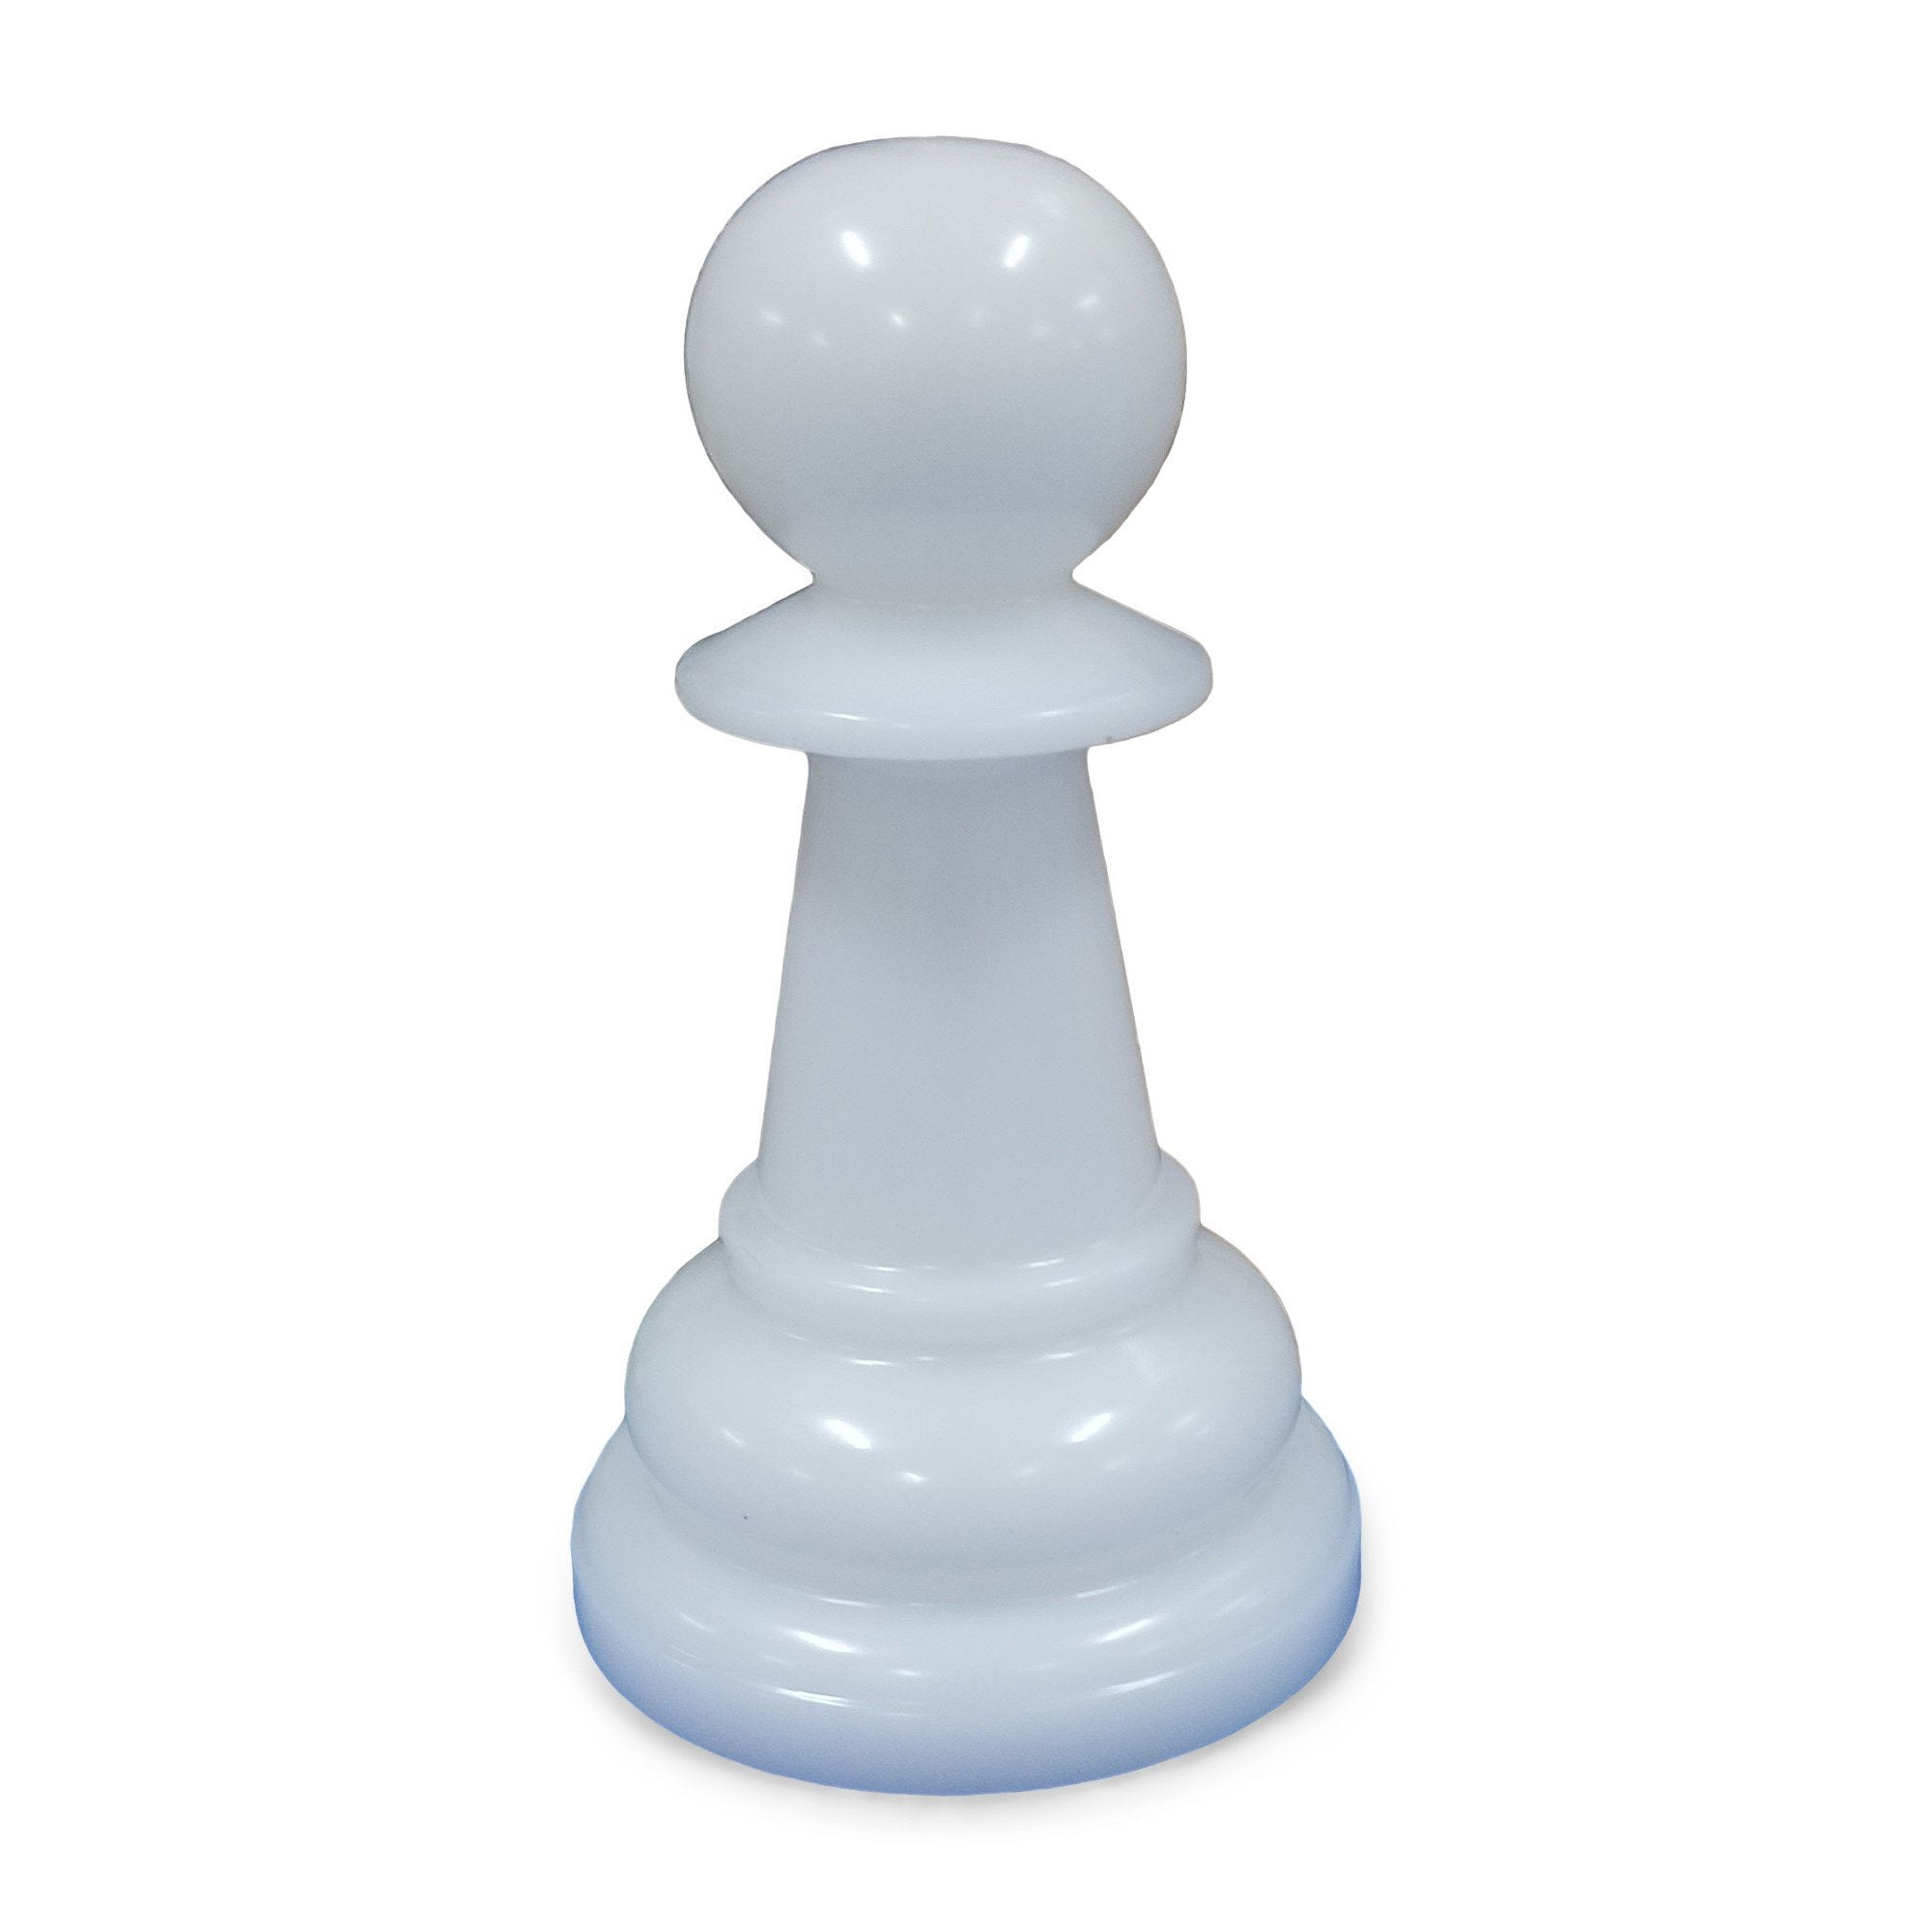 MegaChess 12 Inch White Perfect Pawn Giant Chess Piece |  | MegaChess.com